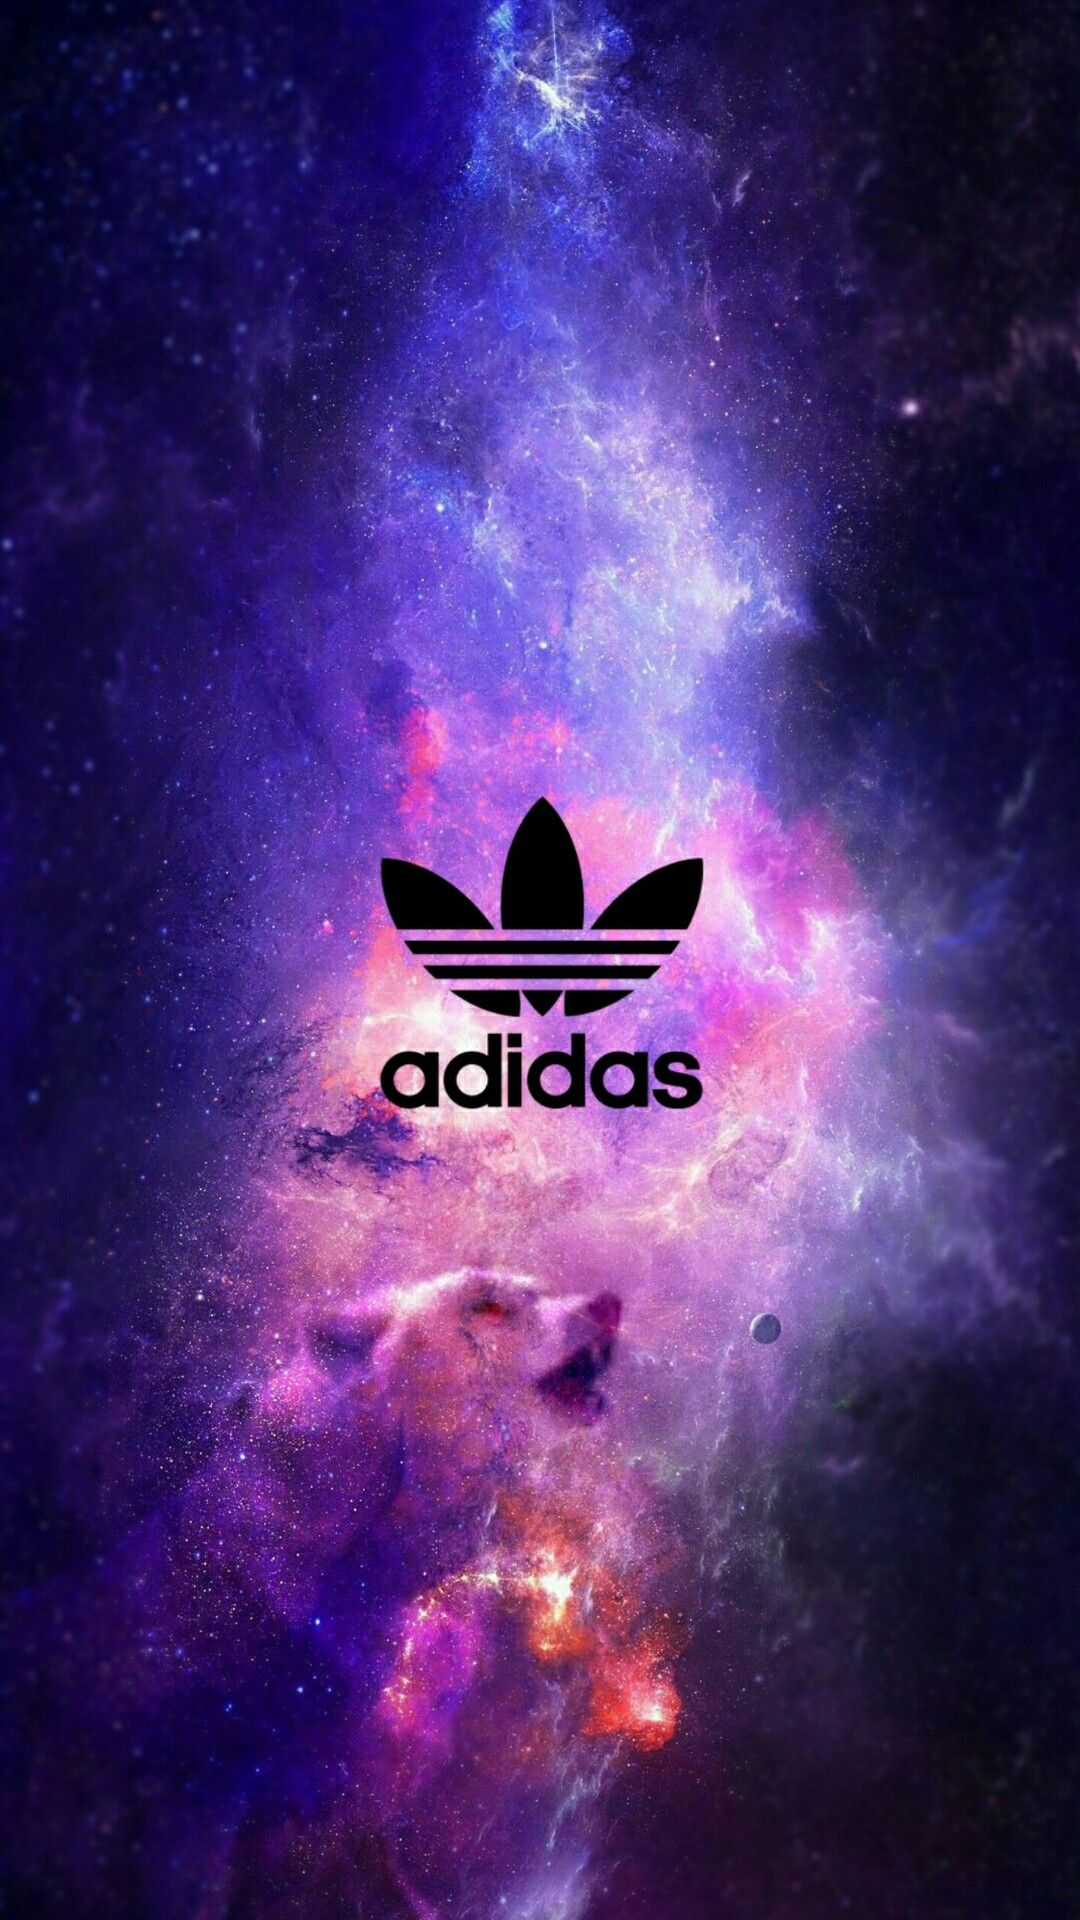 Adidas Wallpaper/Graphic | Graphics/Wallpapers | Cool ...